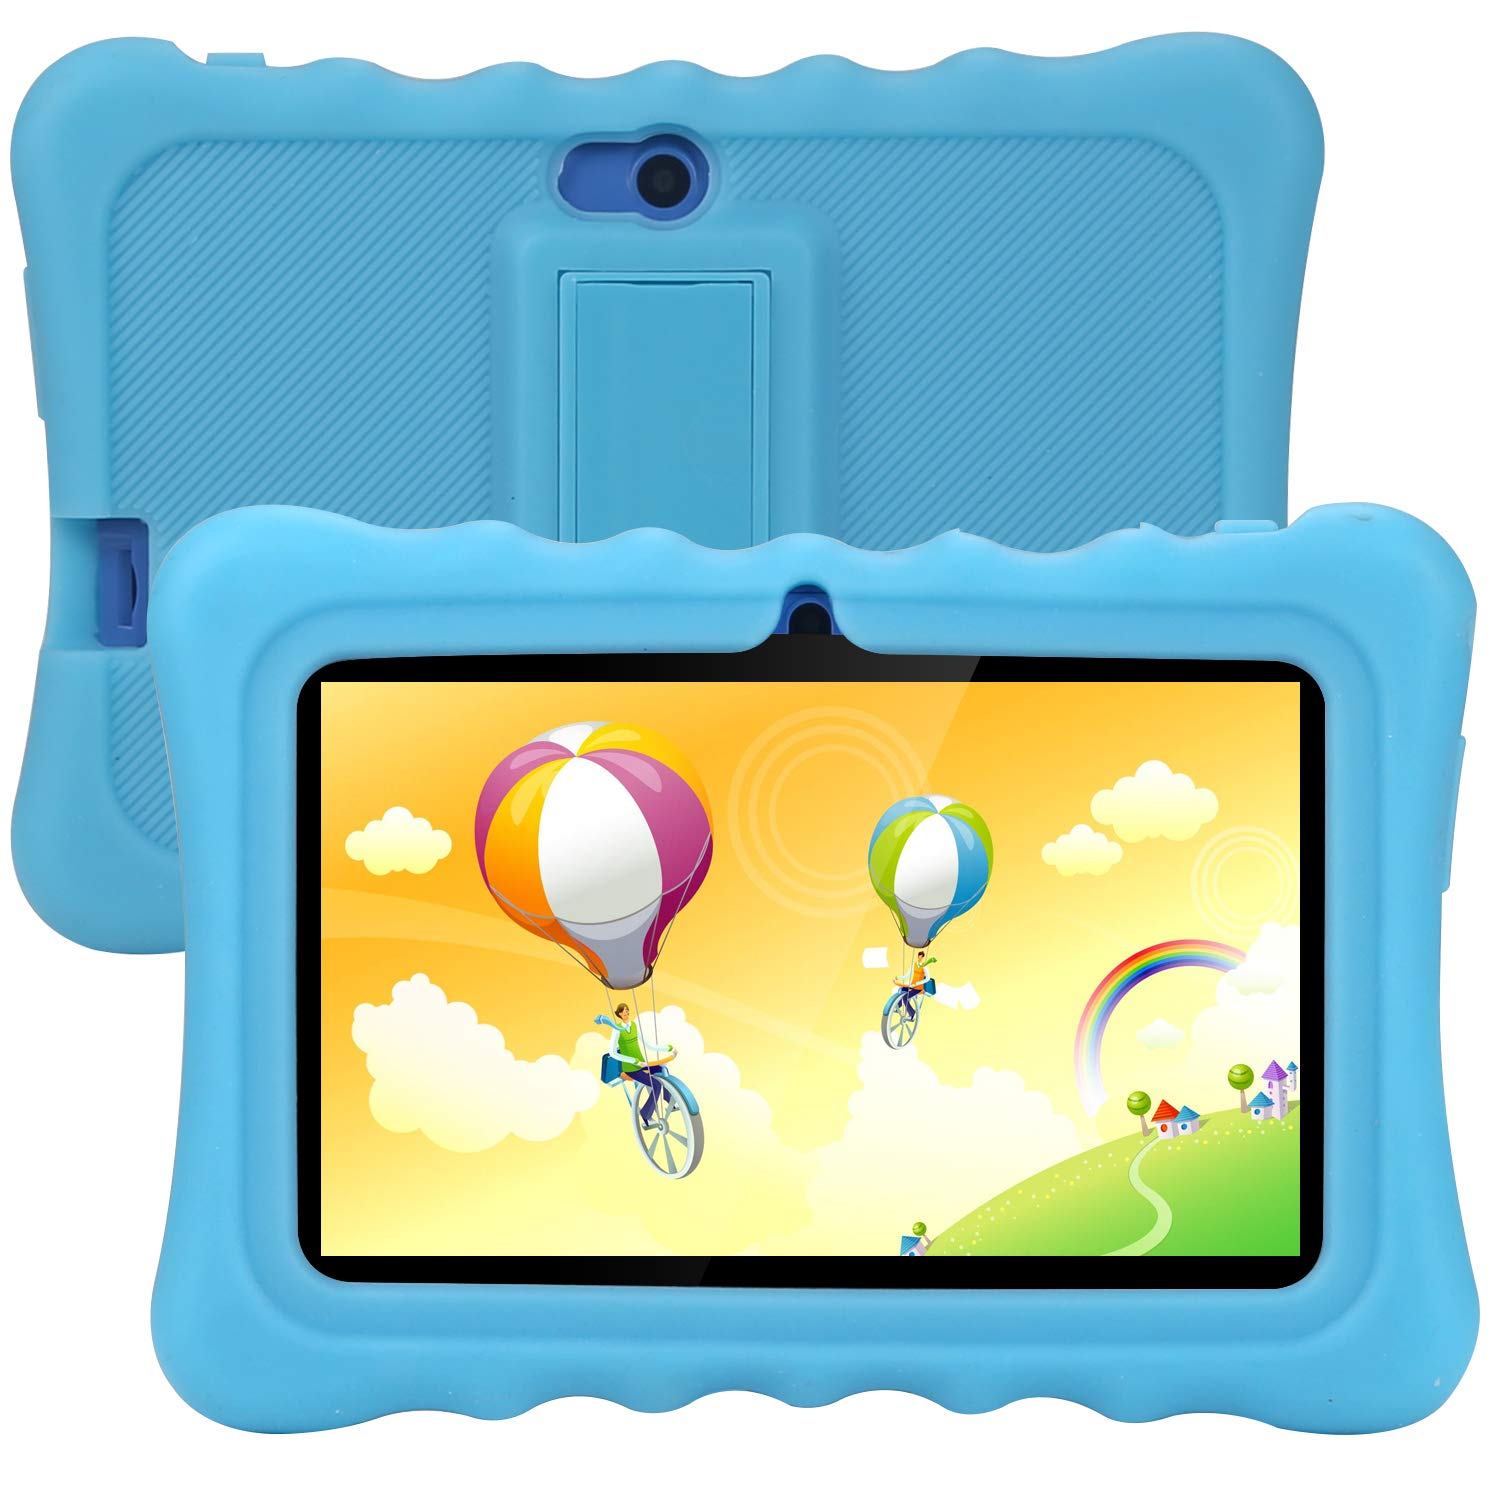 Tagital T7K Plus Kids Tablet, 7 inch Display, Kids Mode Pre-Installed, with WiFi and Camera and Games, HD Kids Edition (Blue)